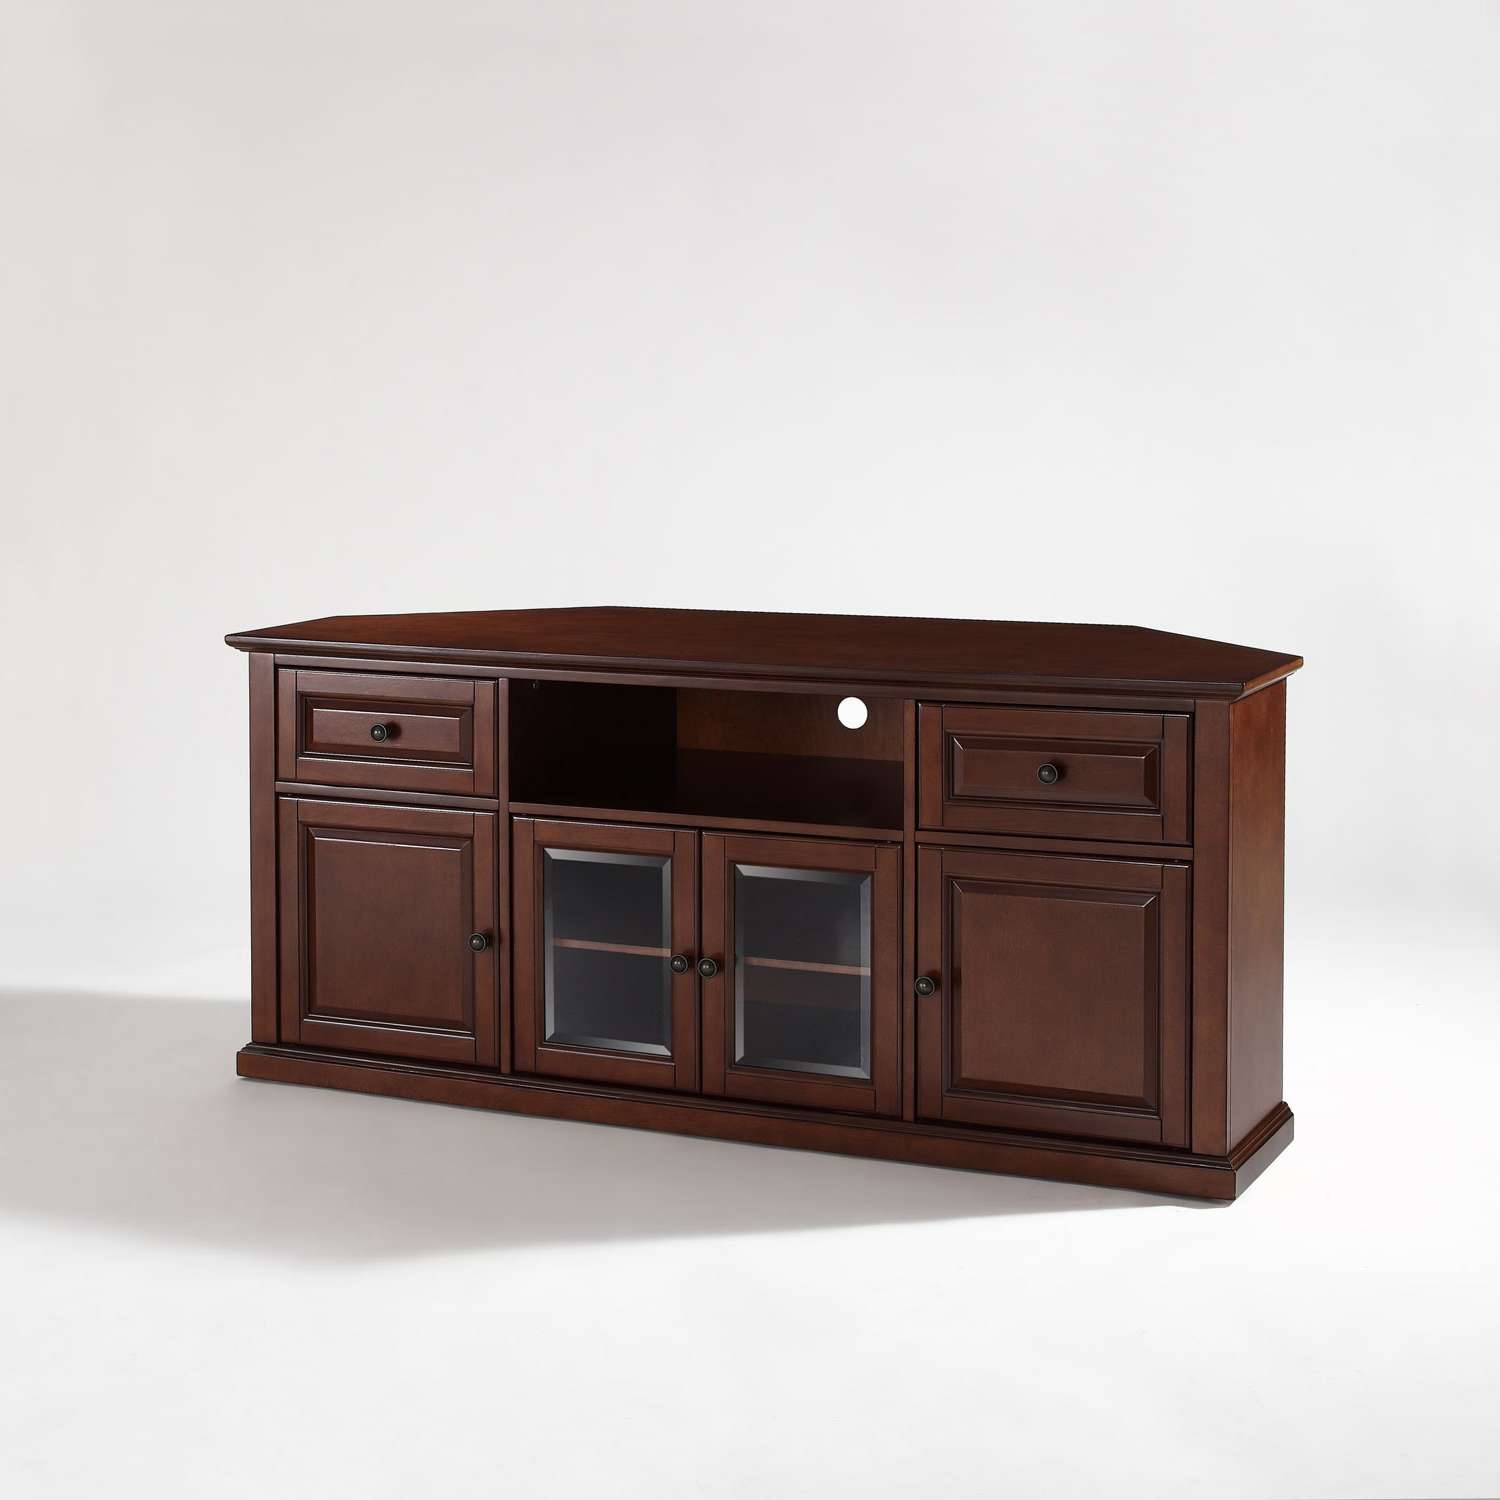 60 Inch Corner Tv Stand In Vintage Mahogany Crosley Furniture Intended For Corner Tv Stands (View 1 of 15)